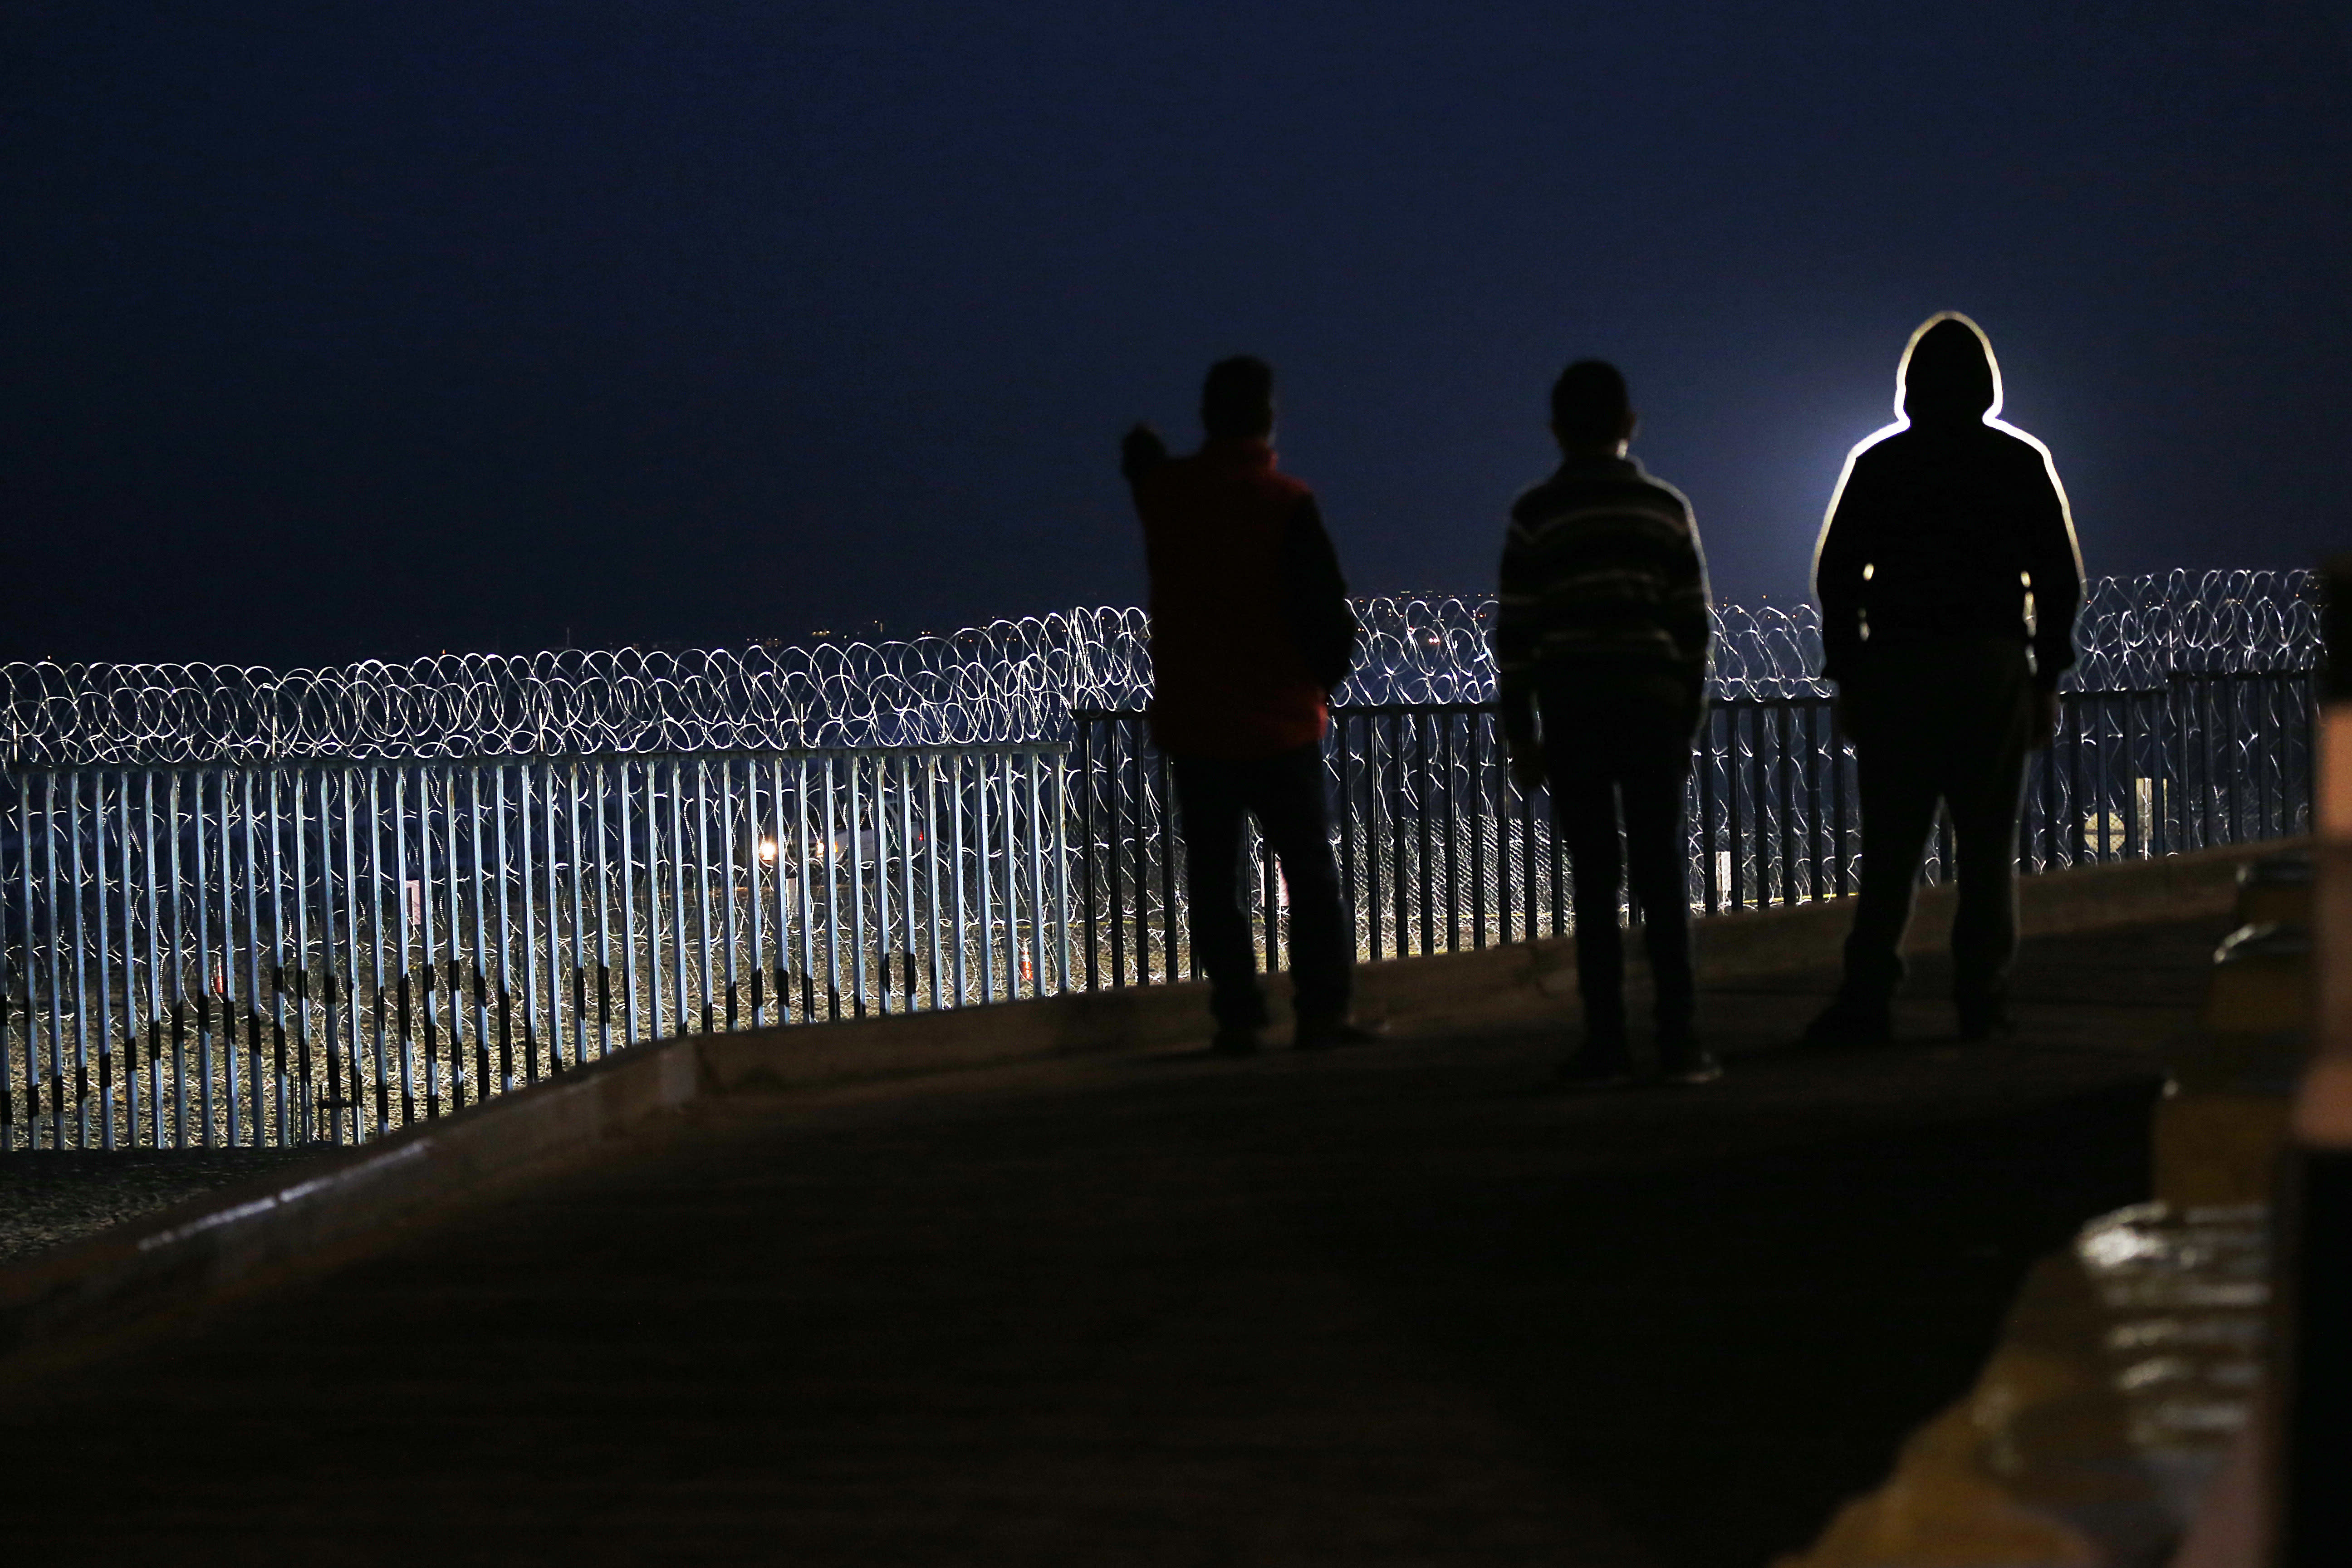 """Residents stand on a hill before barriers, wrapped in concertina wire, separating Mexico and the United States, where the border meets the Pacific Ocean, in Tijuana, Mexico, Saturday, Nov. 17, 2018. Many of the nearly 3,000 migrants have reached the border with California. The mayor has called the migrants' arrival an """"avalanche"""" that the city is ill-prepared to handle. (AP Photo/Marco Ugarte)"""